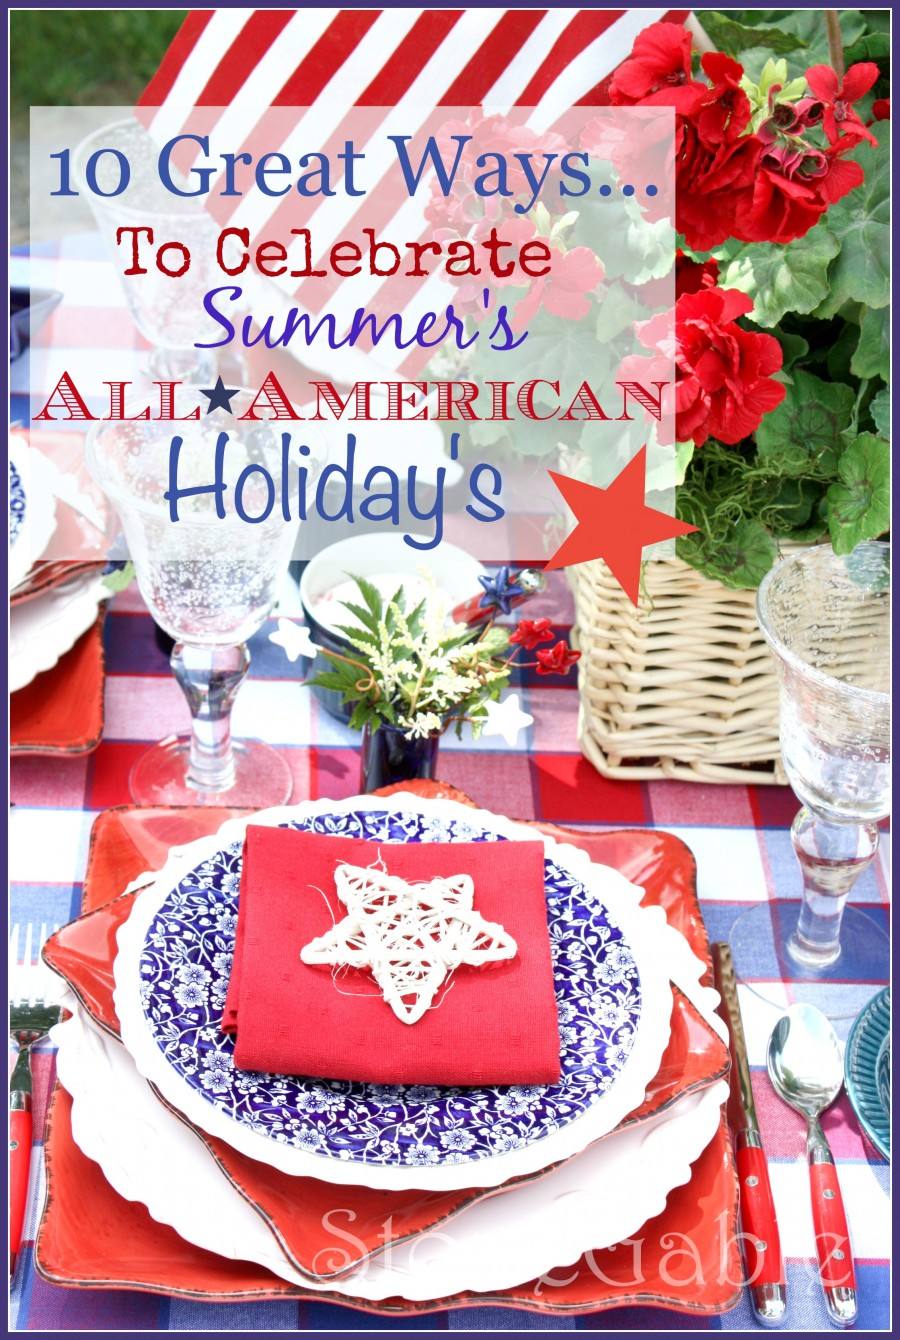 10 AMAZING WAYS TO CELEBRATE PATRIOTIC HOLIDAYS WITH PIZZAZ AND SPARKLE! These are fabulous and fun